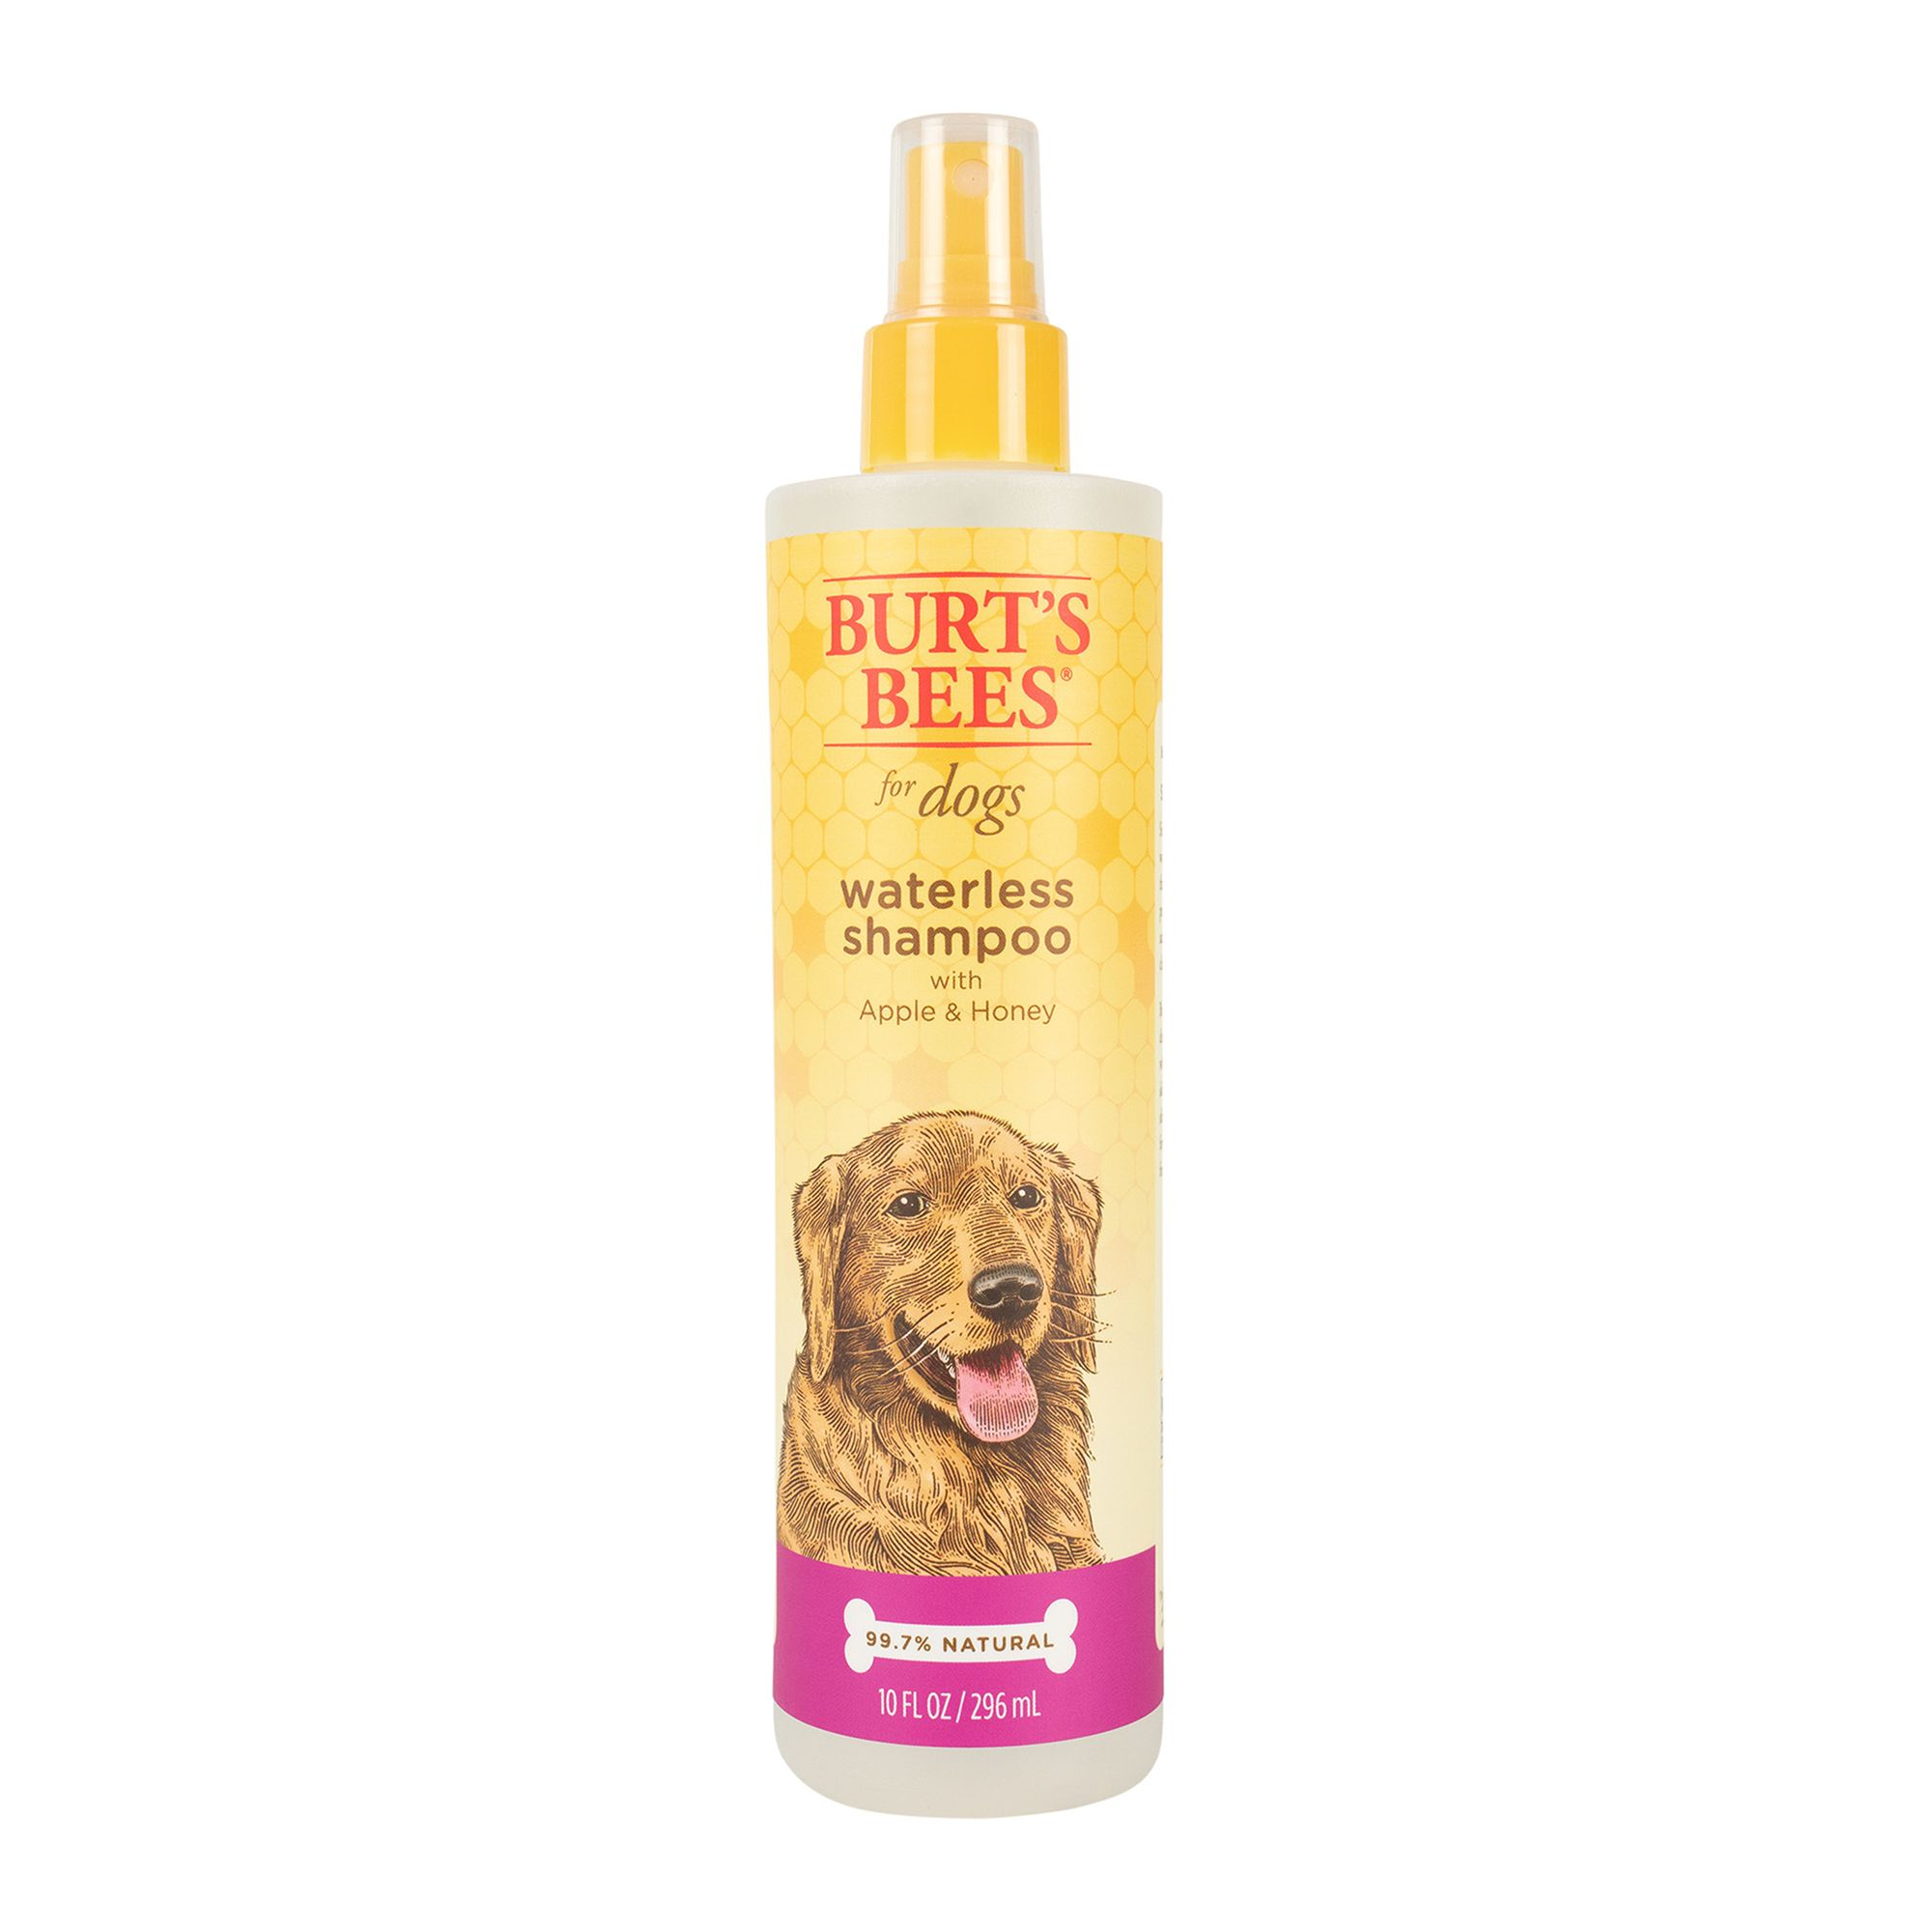 Burts Bees Waterless Dog Spray Shampoo